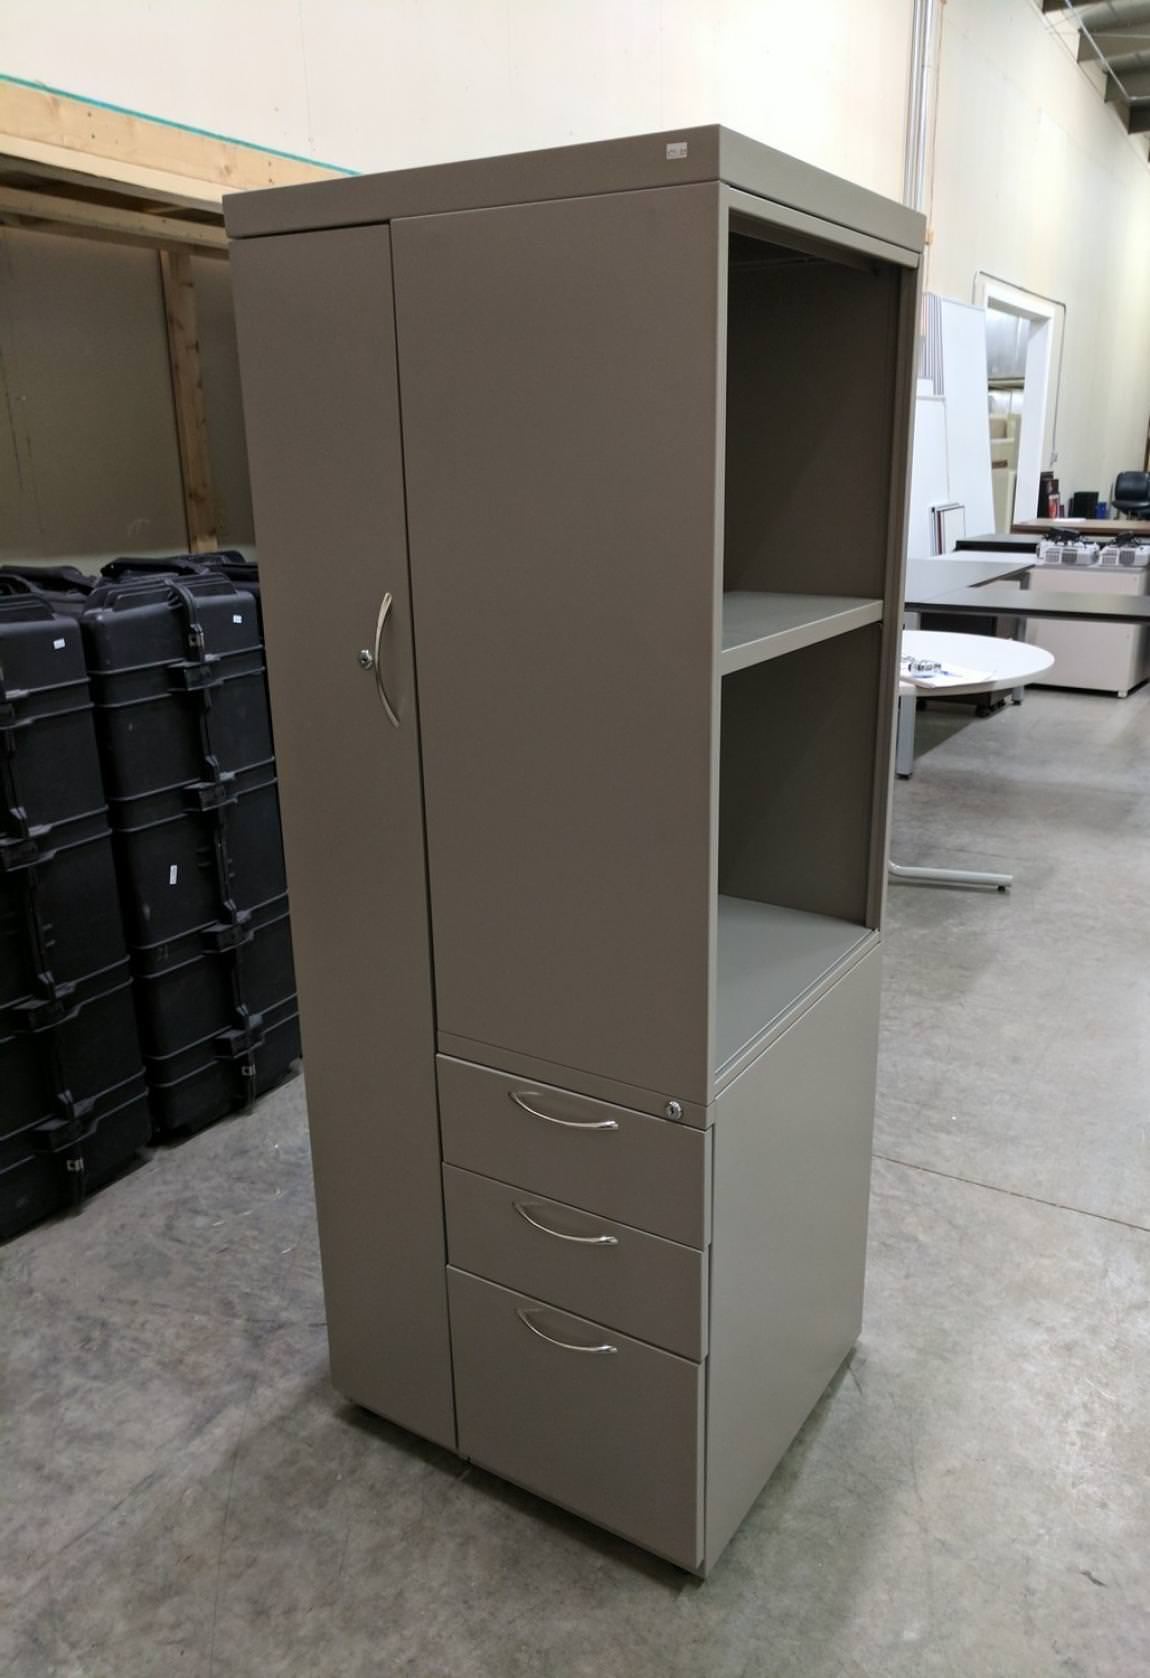 computer chair with arms folding nepal images of putty steel wardrobe storage cabinet